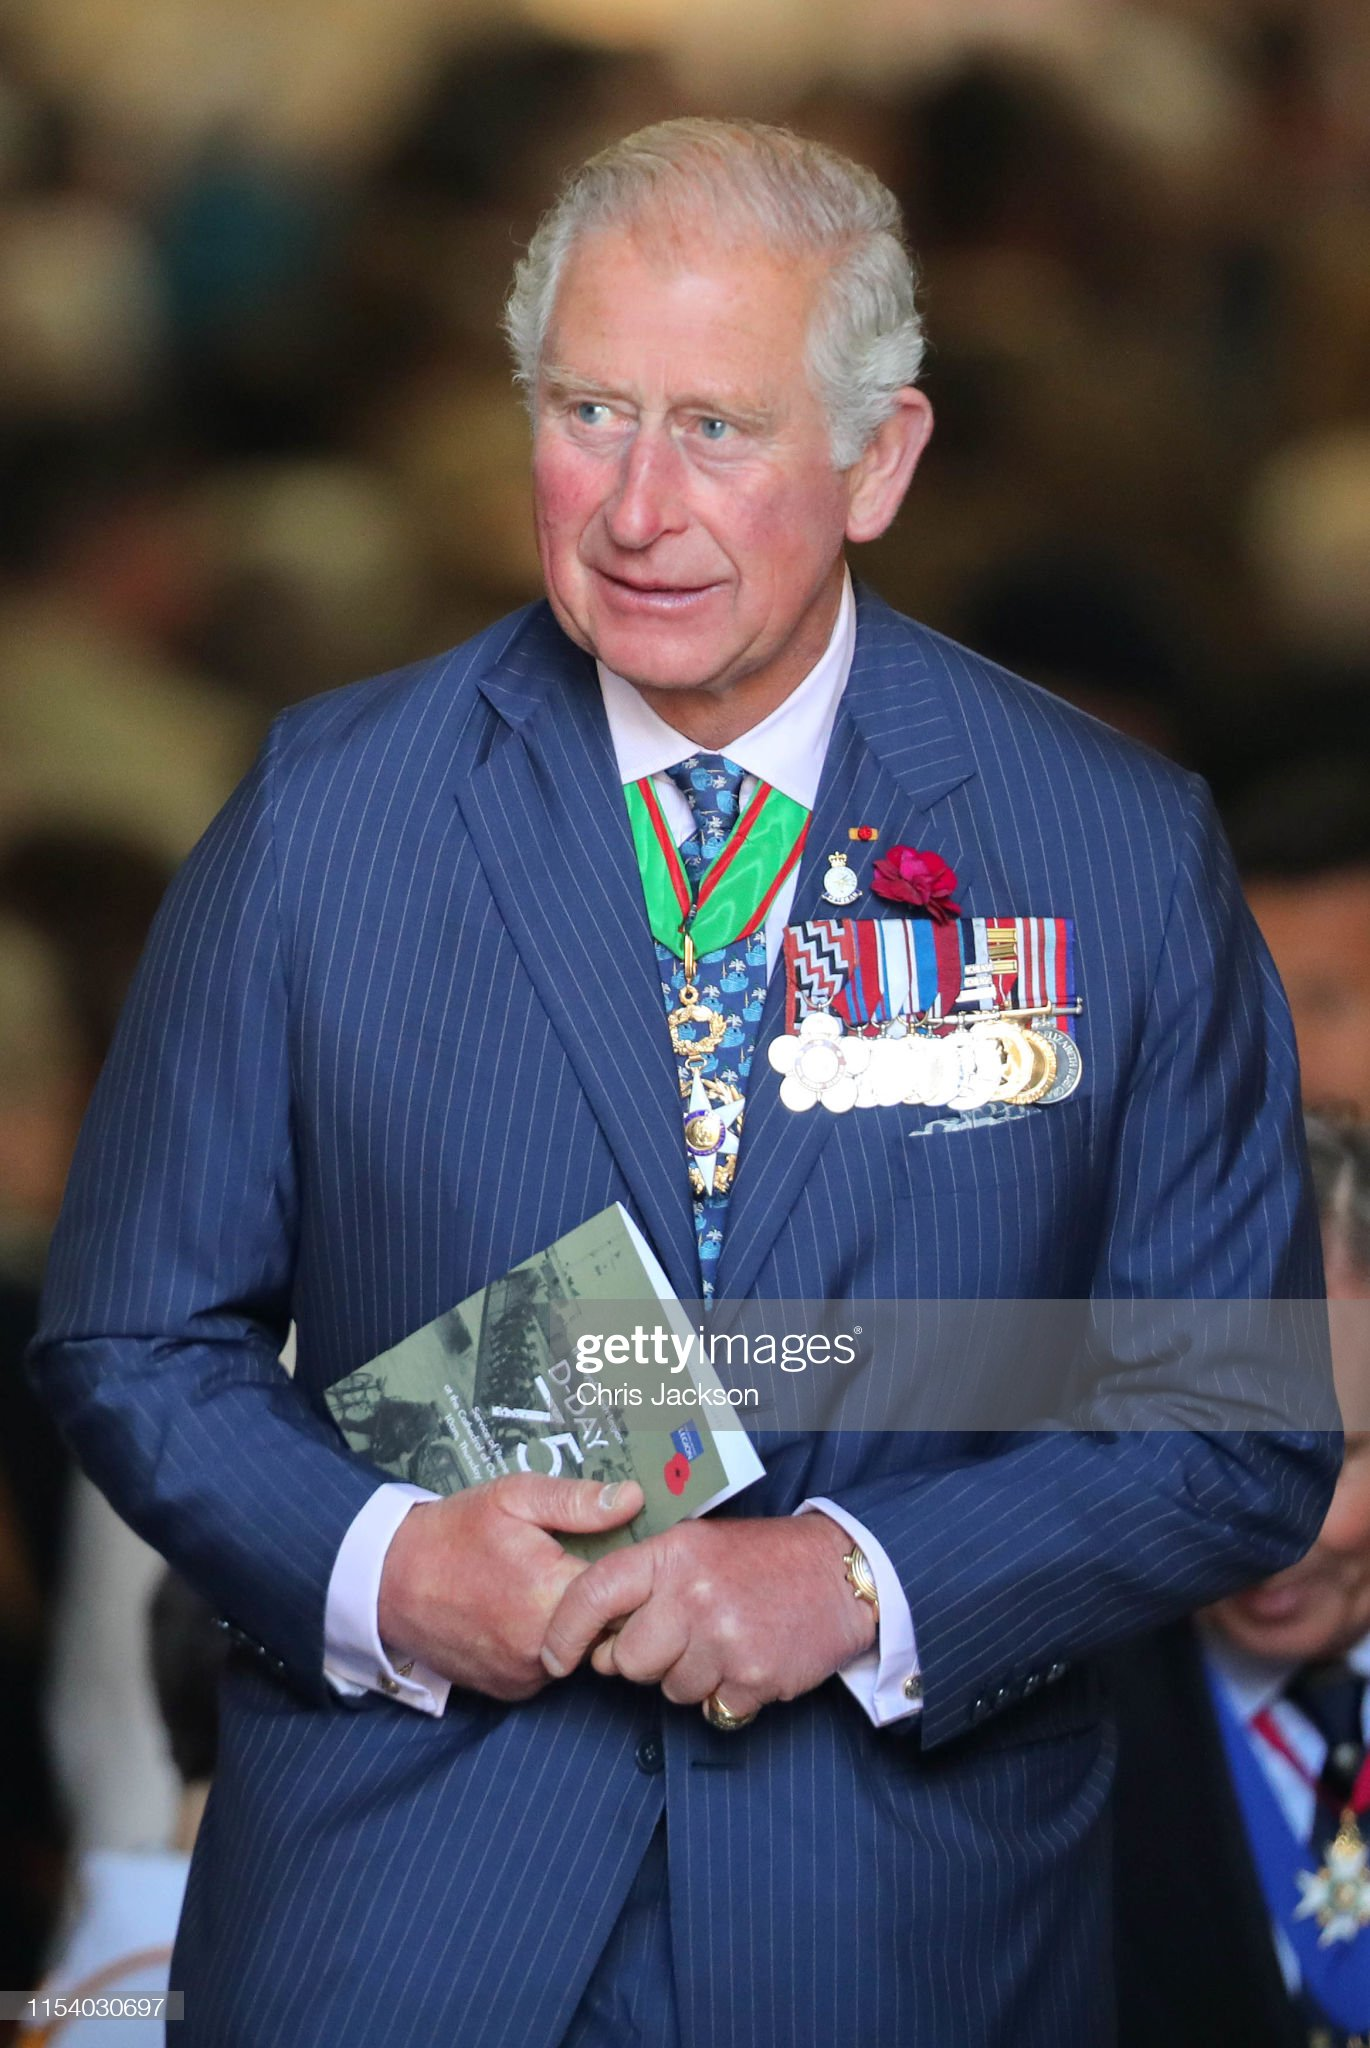 prince-charles-prince-of-wales-leaves-bayeux-cathedral-on-june-06-in-picture-id1154030697